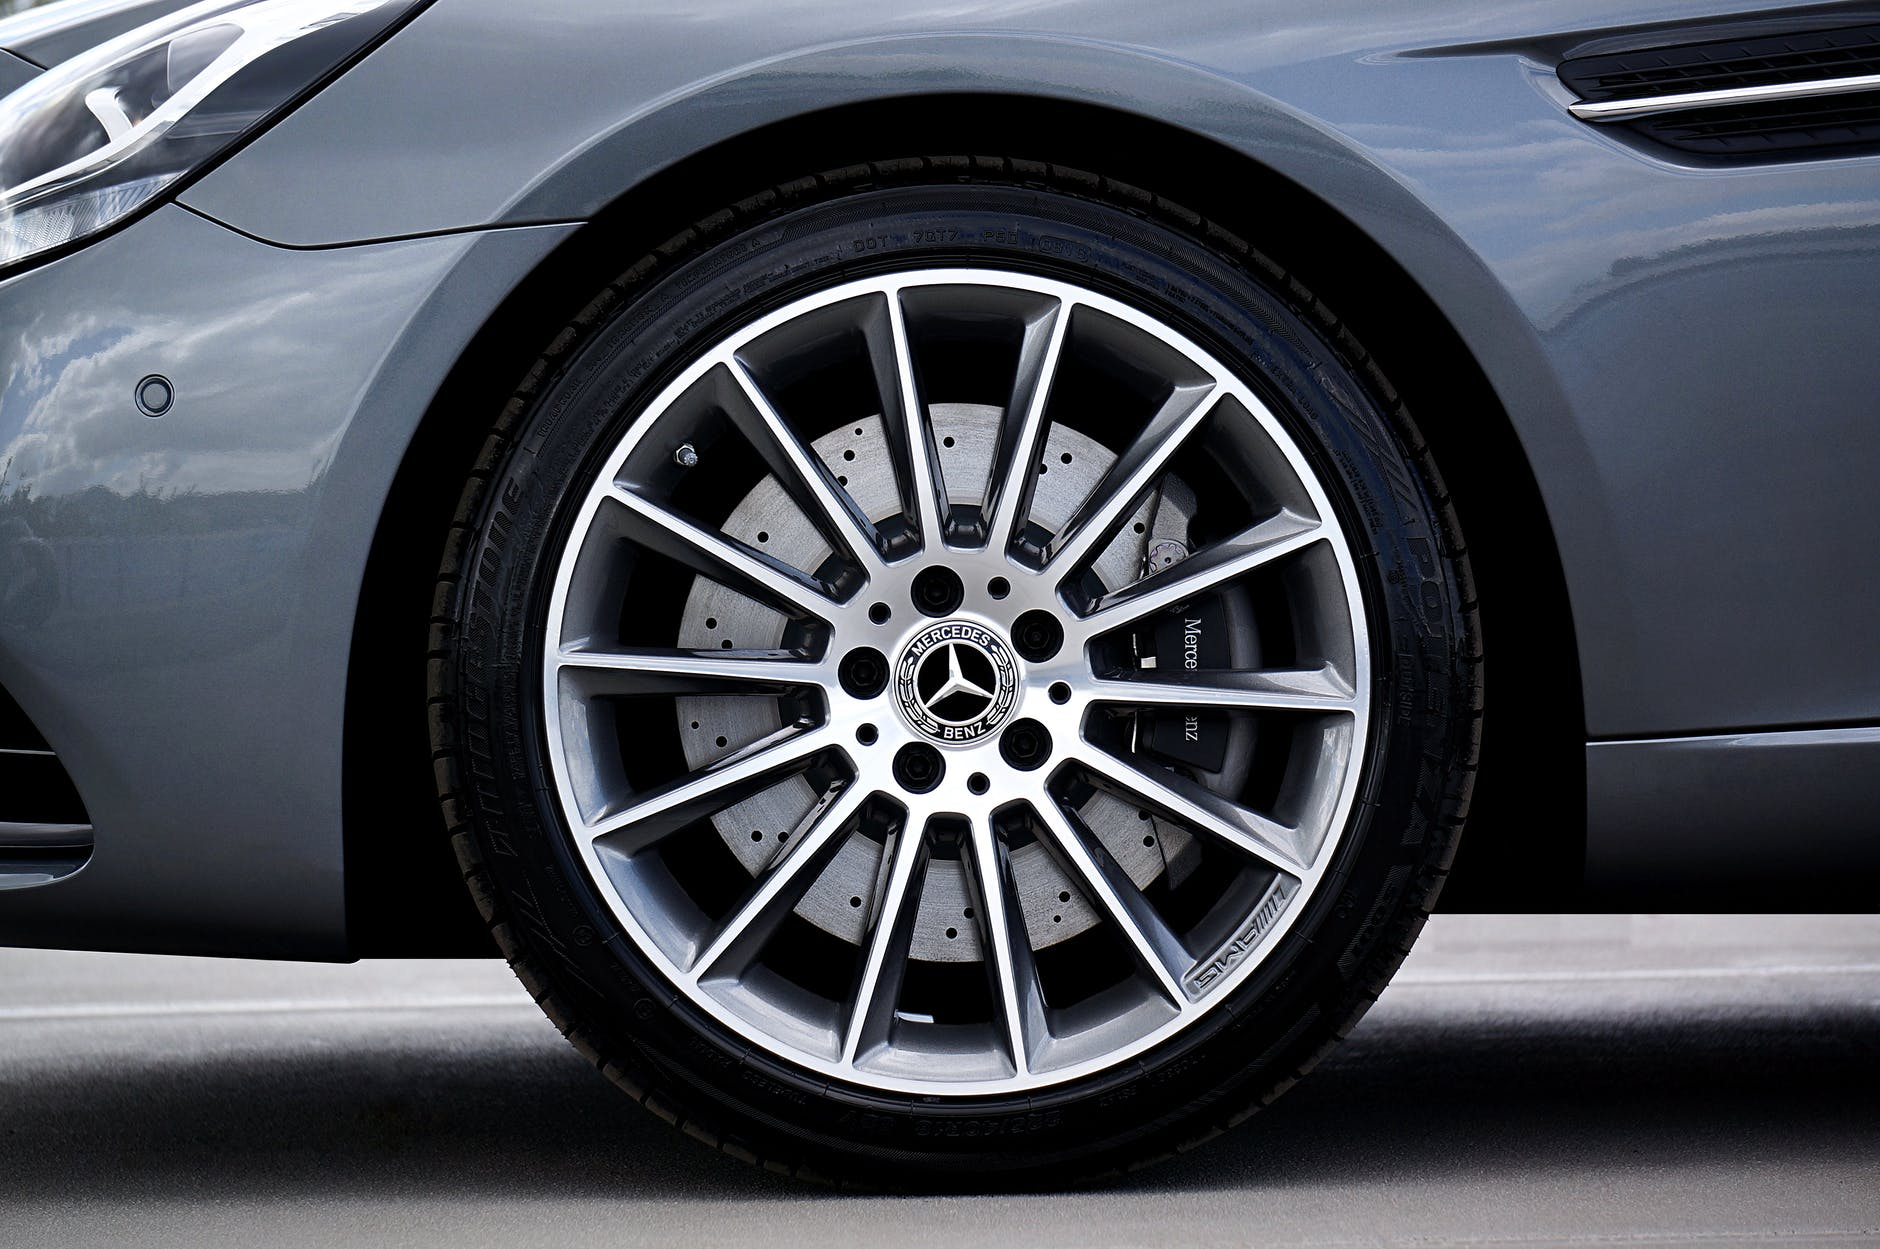 How to Find Tire Diameter